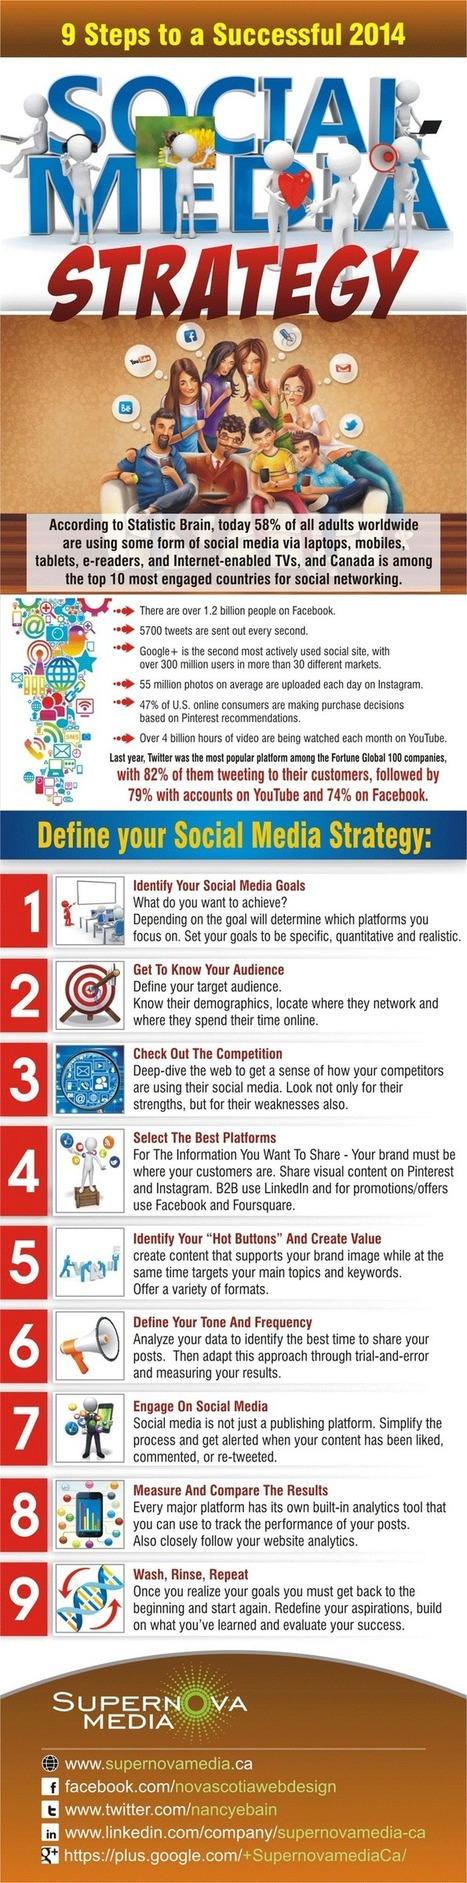 9 Steps to a successful 2014 social media strategy w/infographic. - Supernova Media | Google Plus and Social SEO | Scoop.it